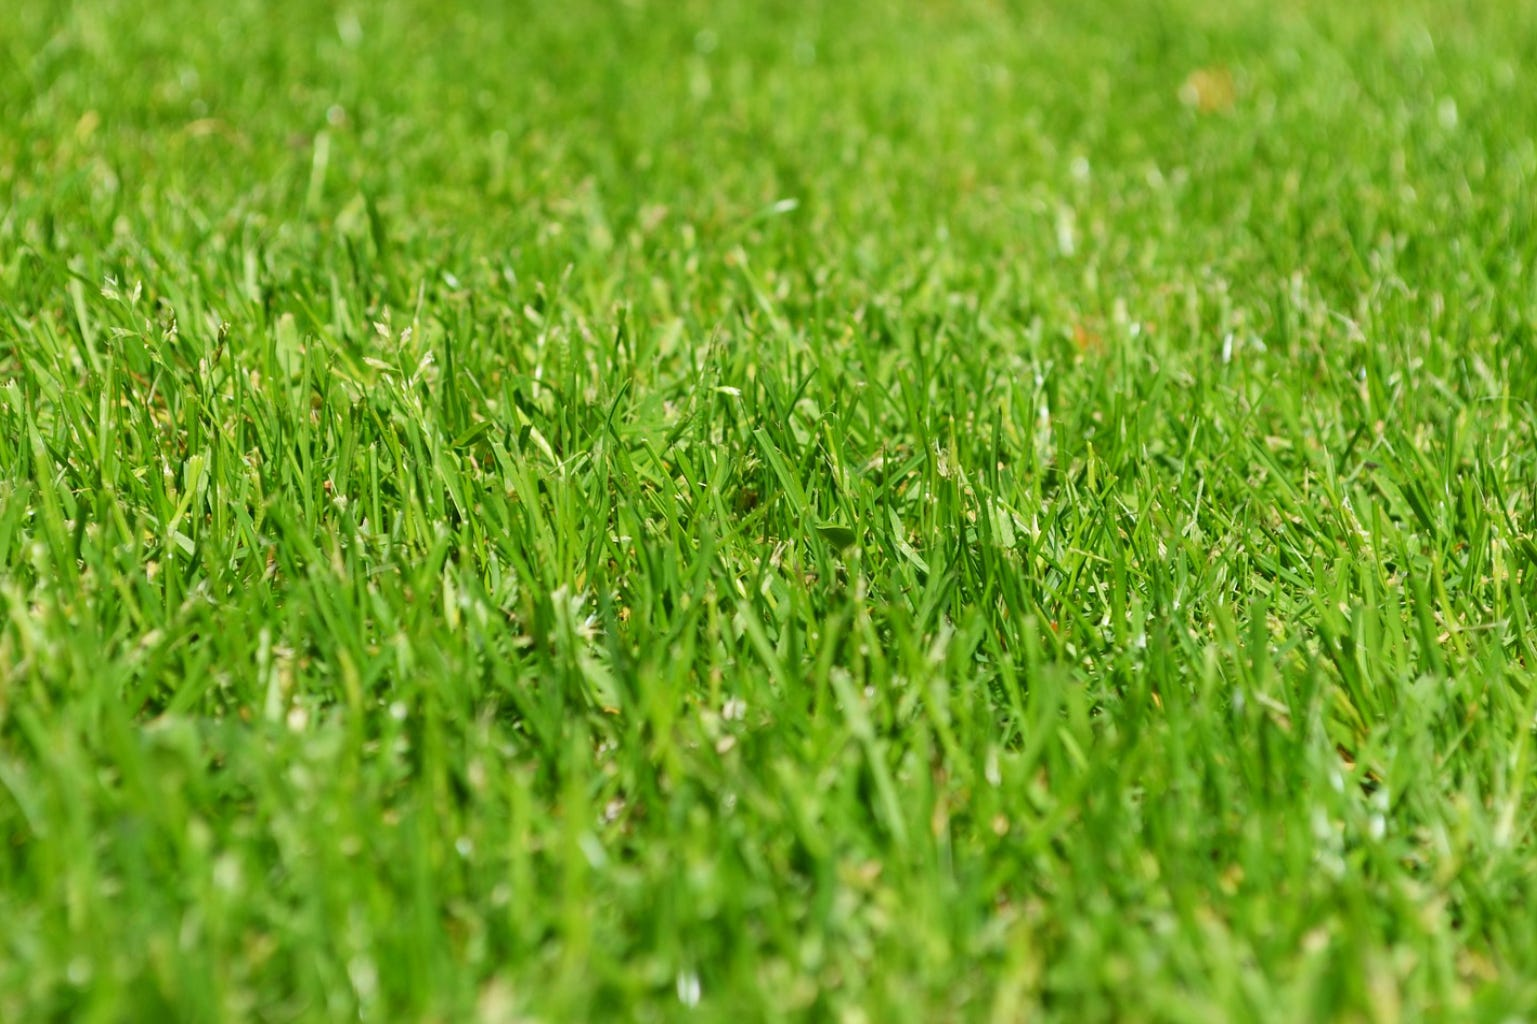 Green grass growing during Spring needs to be aerated before